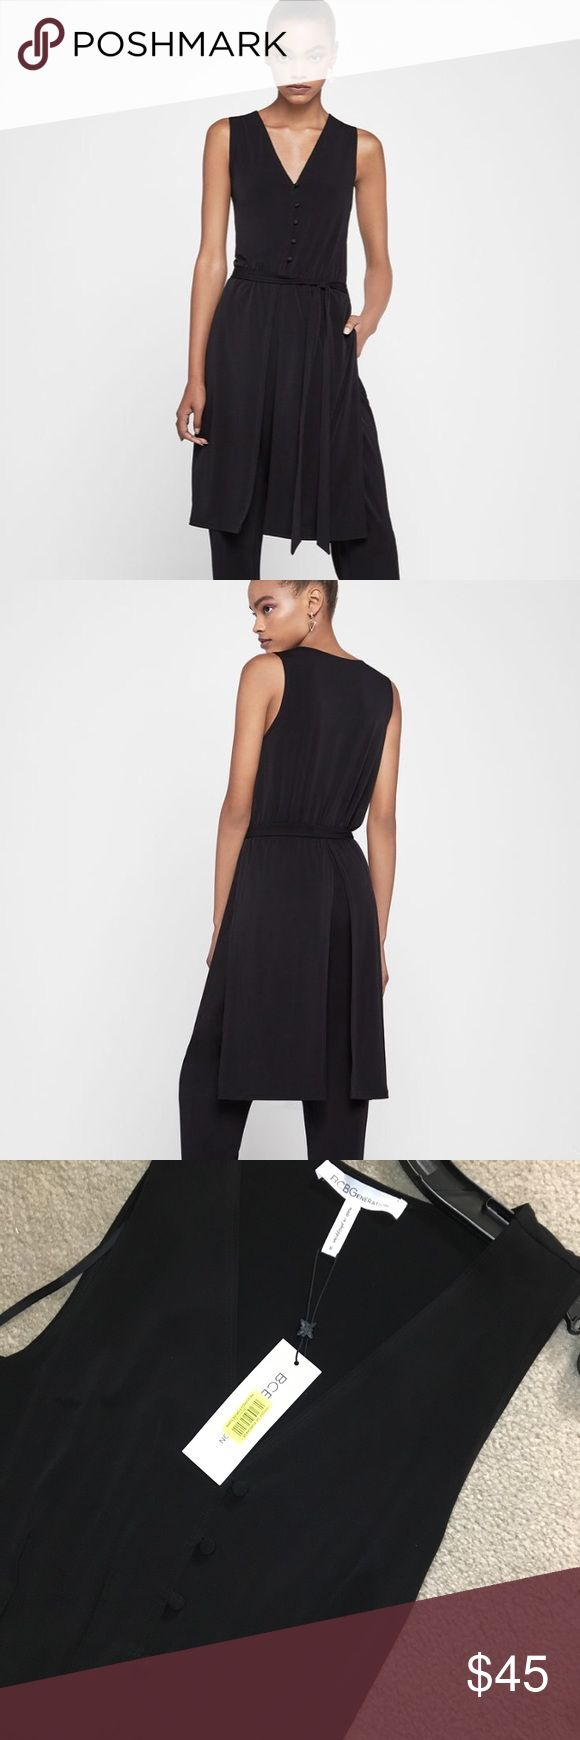 BCBG full body suit Romper of like a romper, but a little loose fitting. BCBGeneration Other